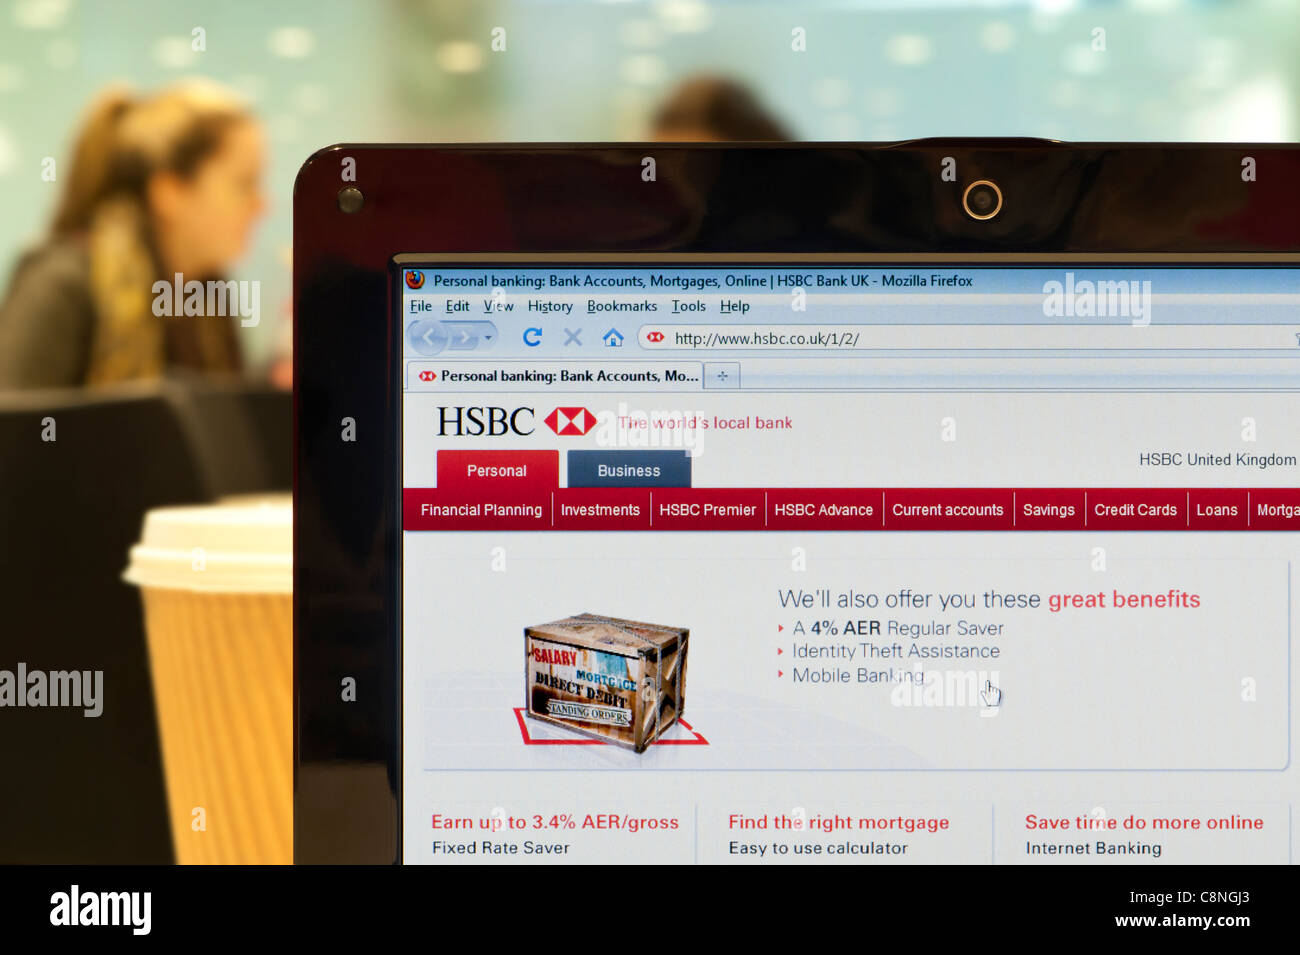 Hsbc Website Stock Photos & Hsbc Website Stock Images - Alamy